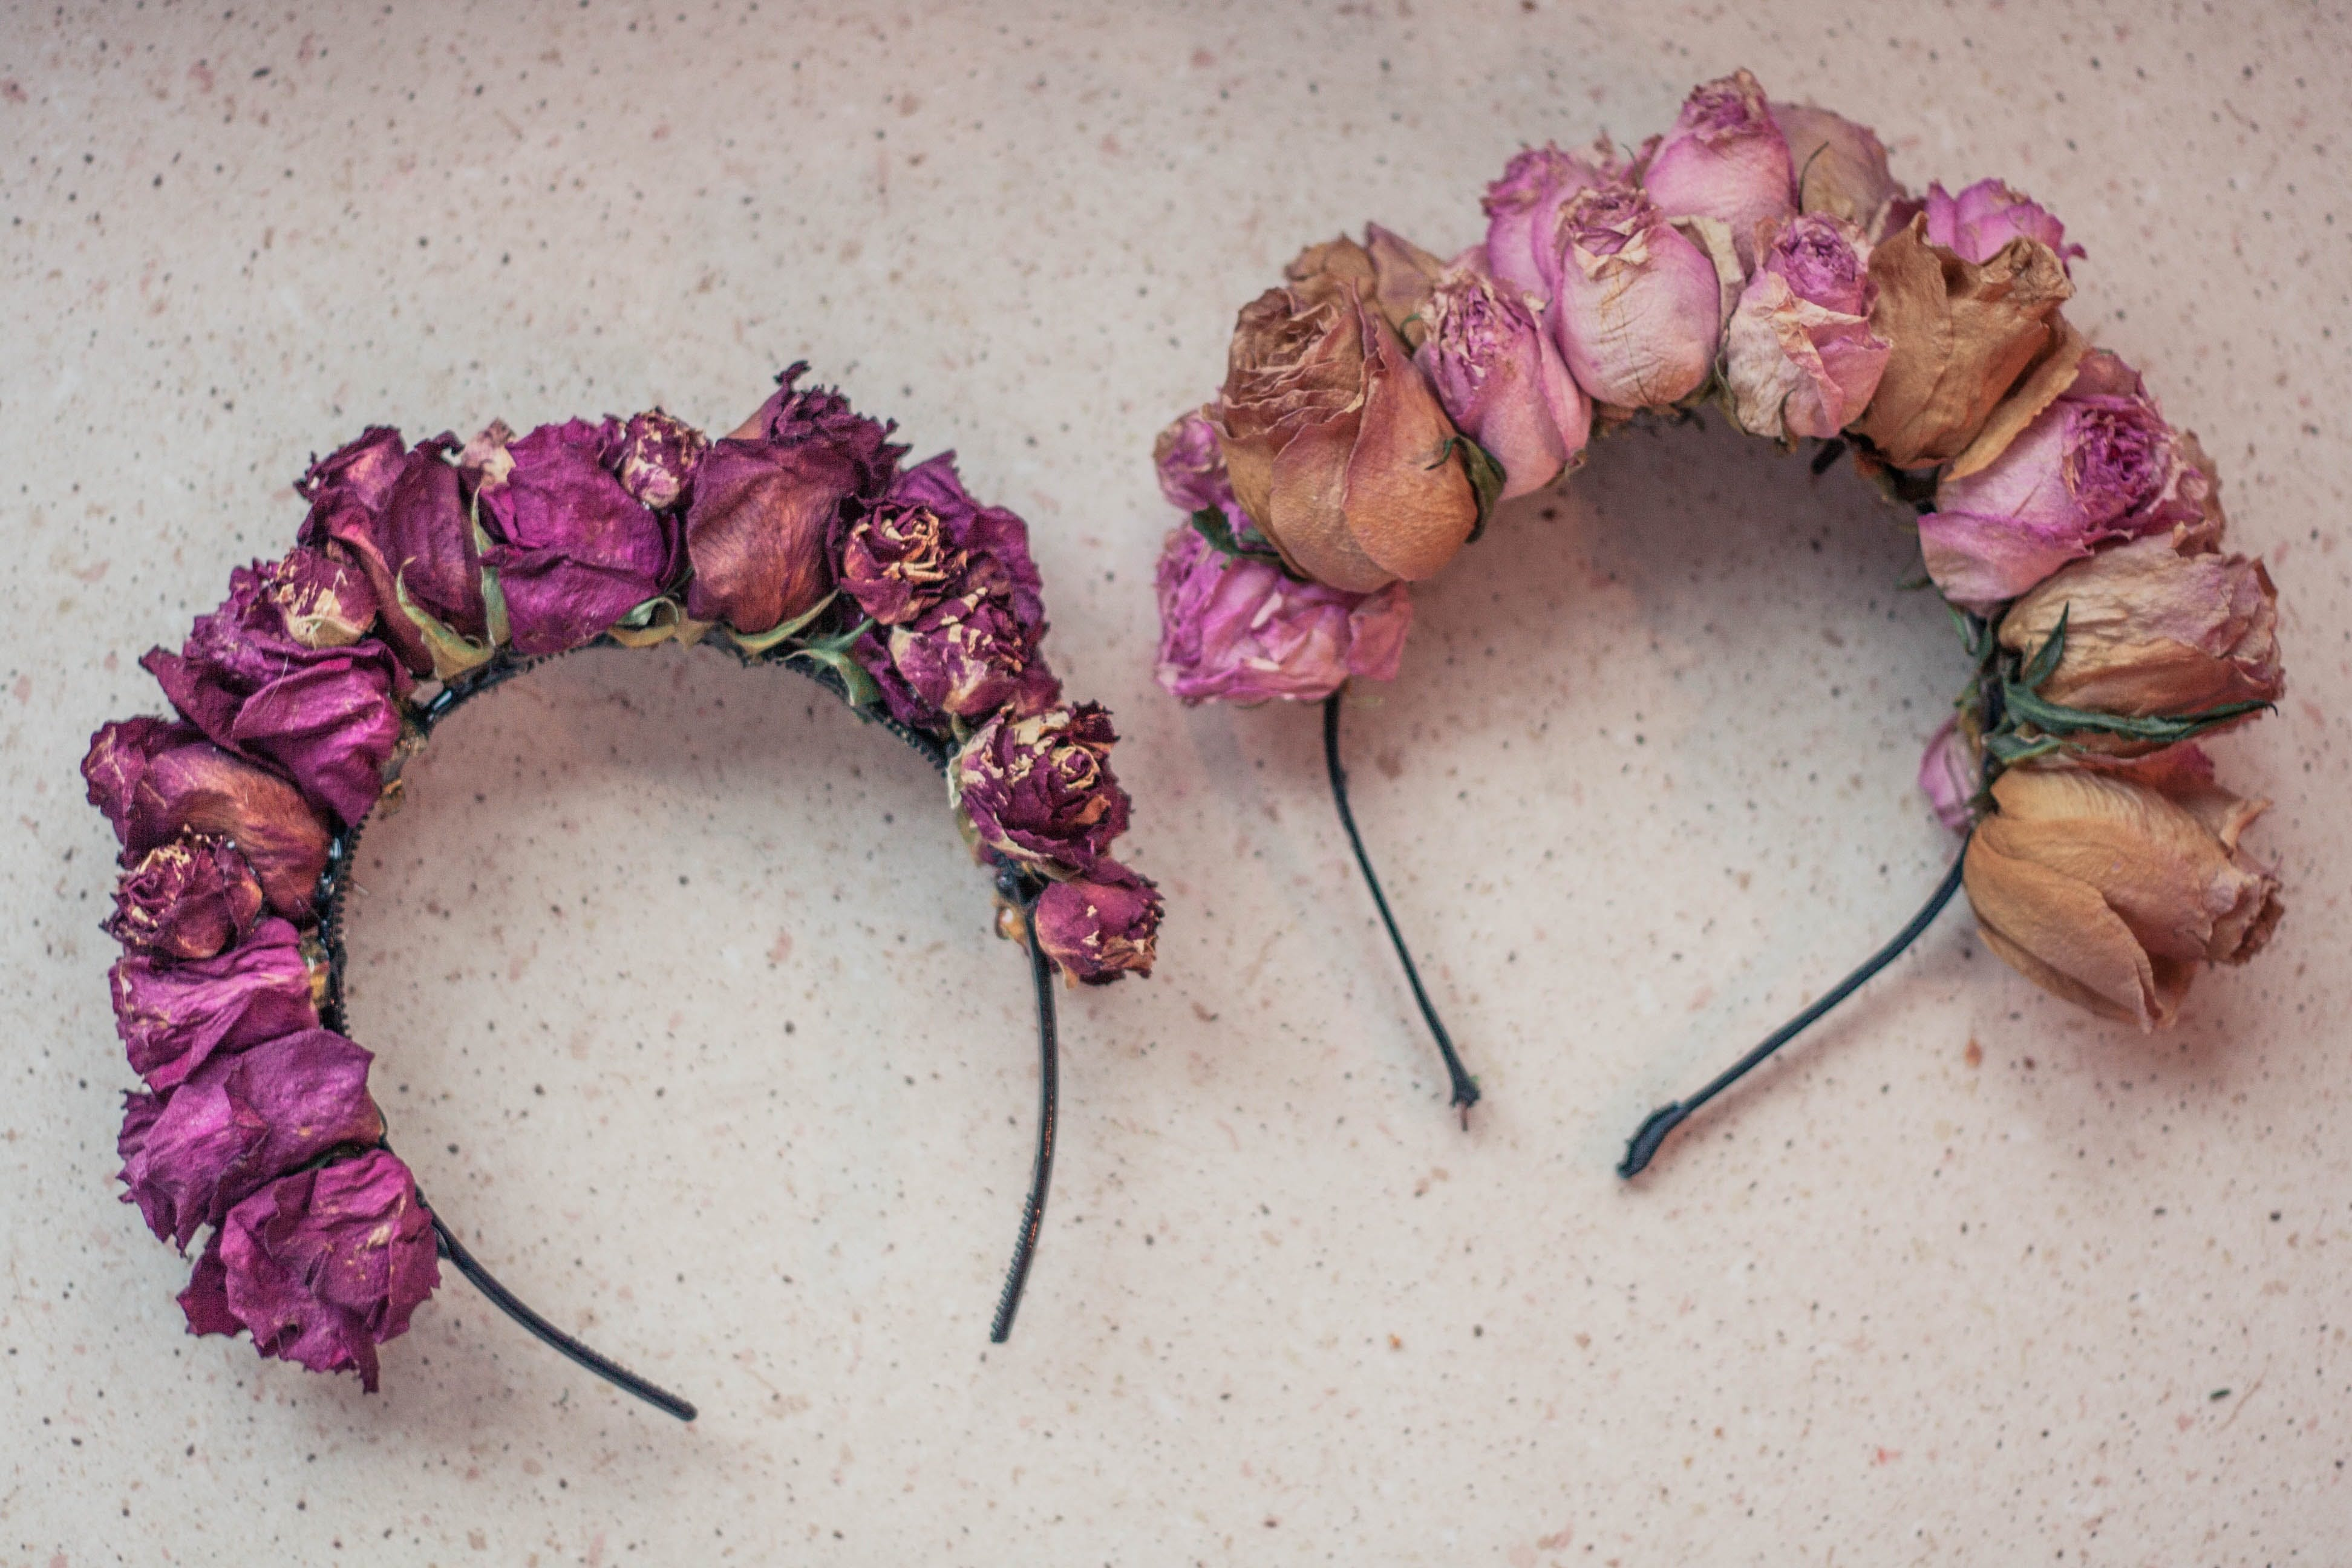 Two Pink Rose Flower-accent Headbands on White Surface